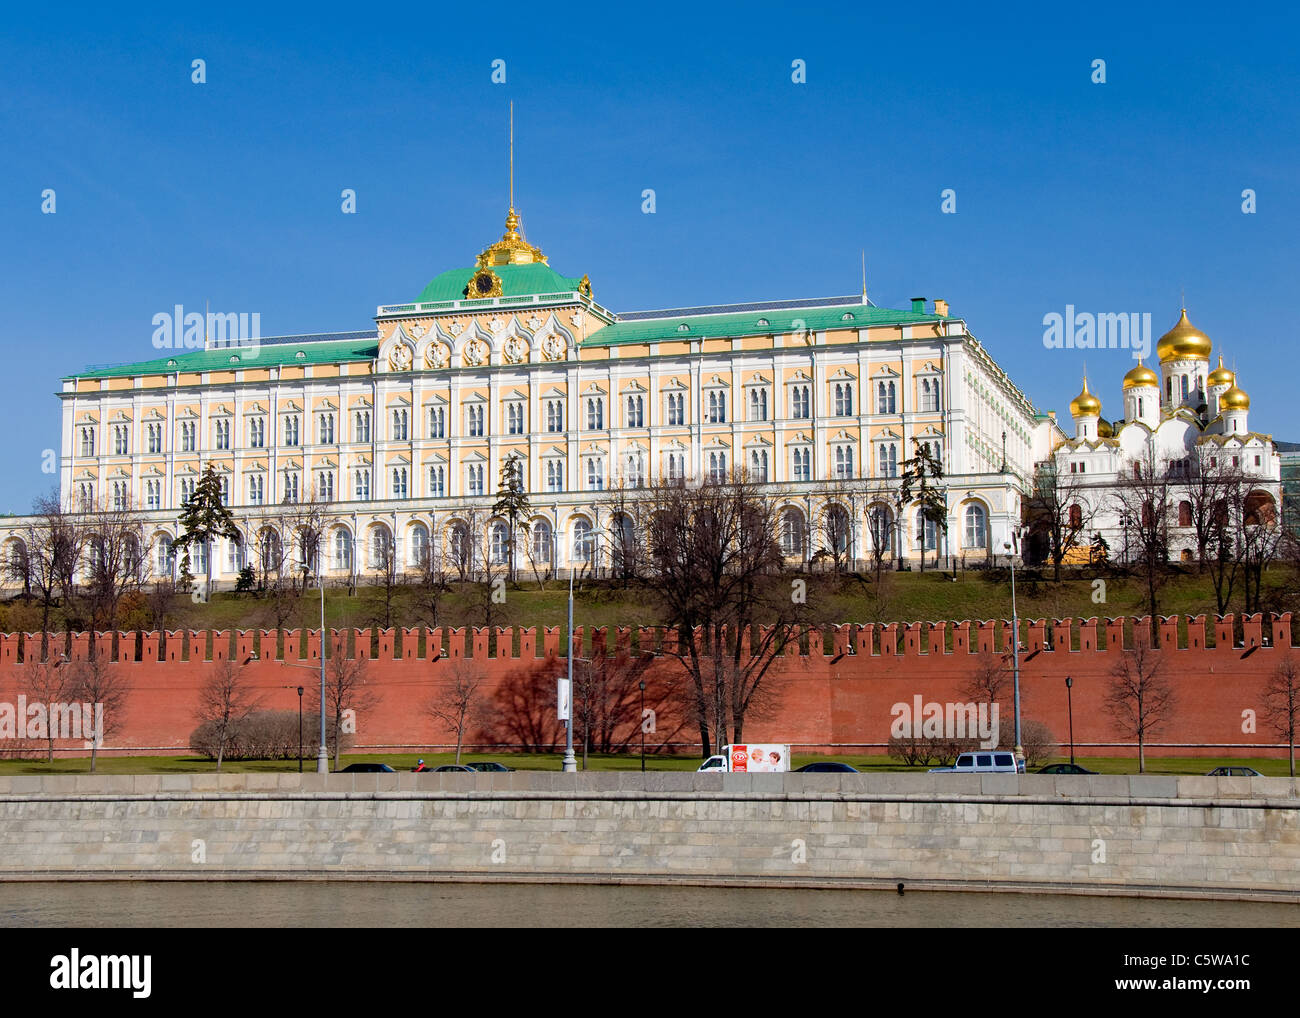 The Kremlin, Moscow, Russia - Stock Image